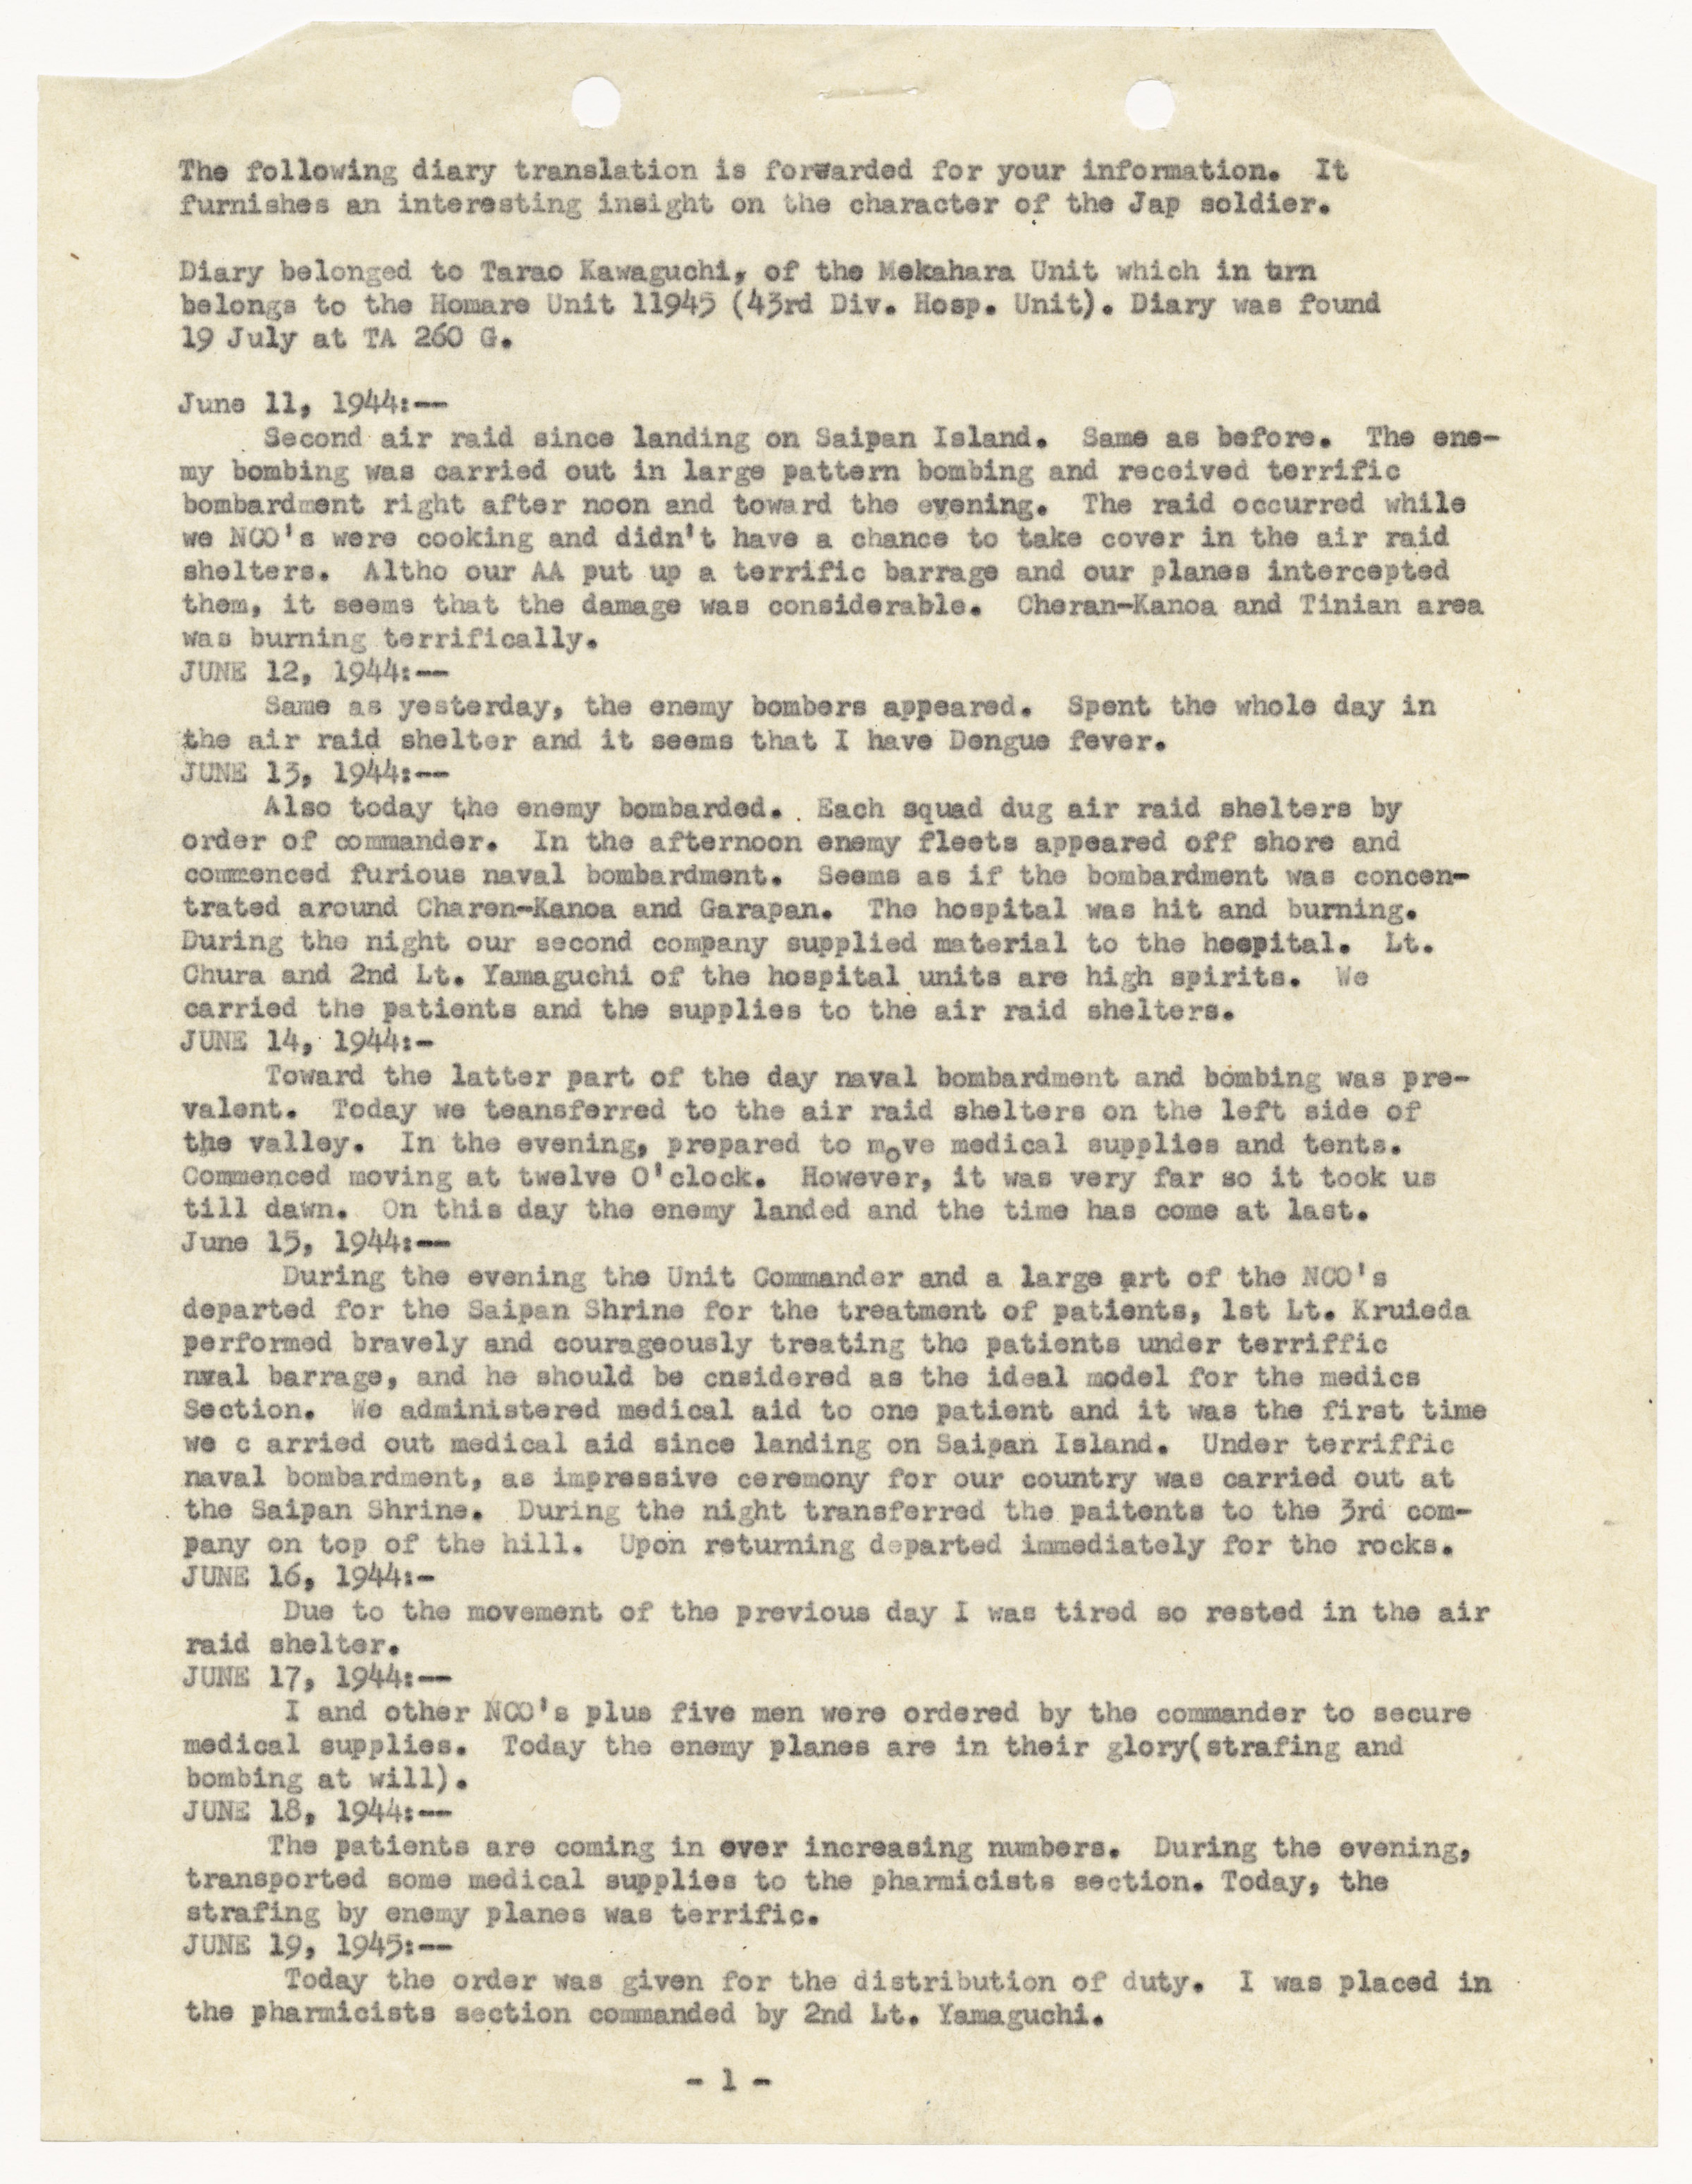 Translation of the Diary of Japanese Serviceman Taroa Kawaguchi Detailing Combat Activity on Saipan